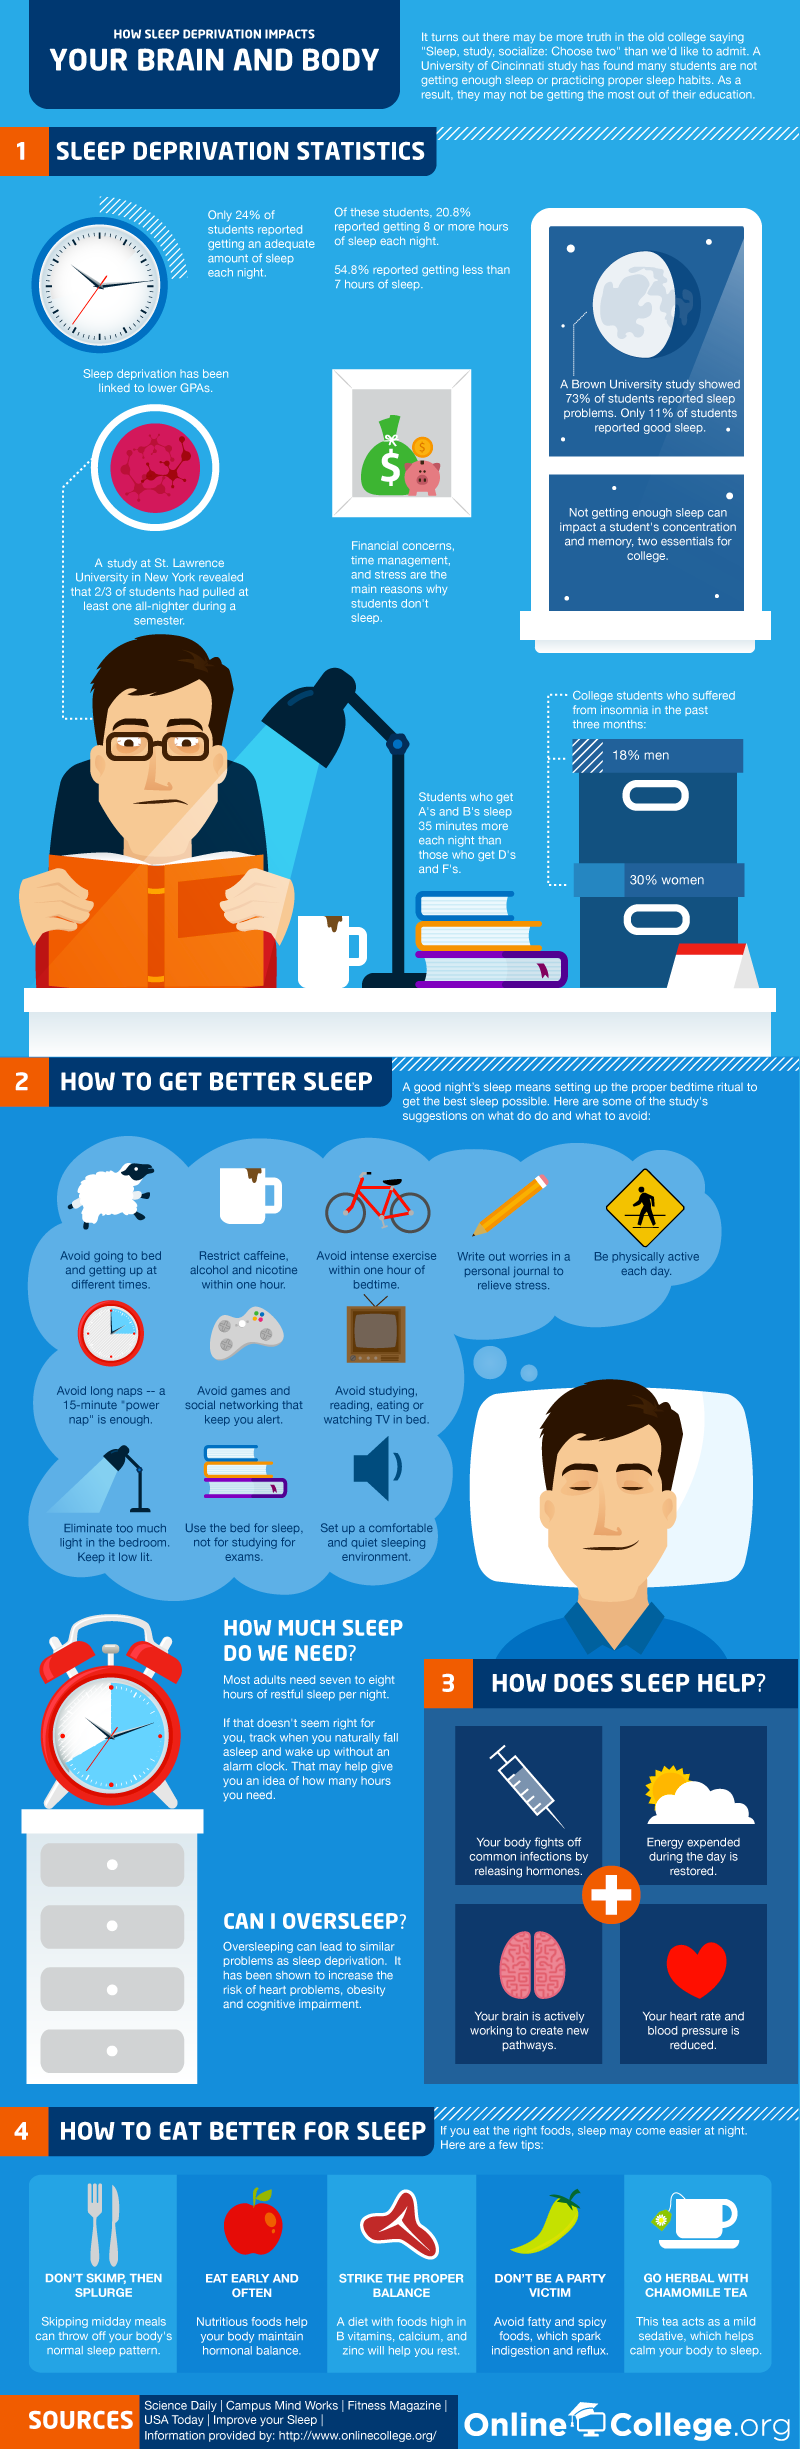 Are College Students Sleeping Well